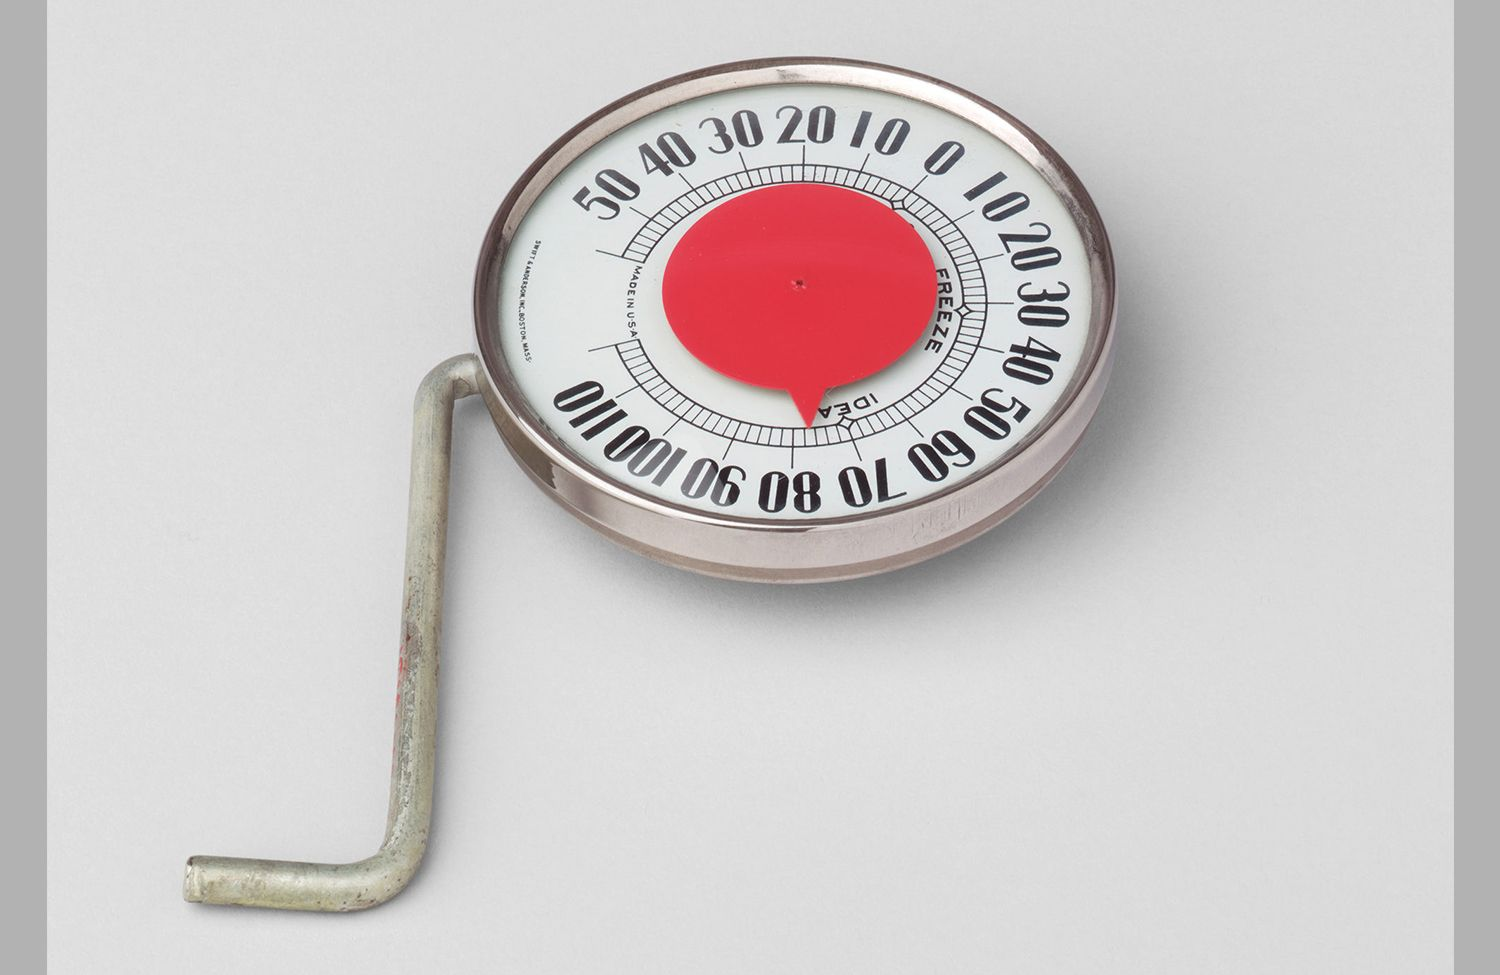 Value of Good Design thermometer